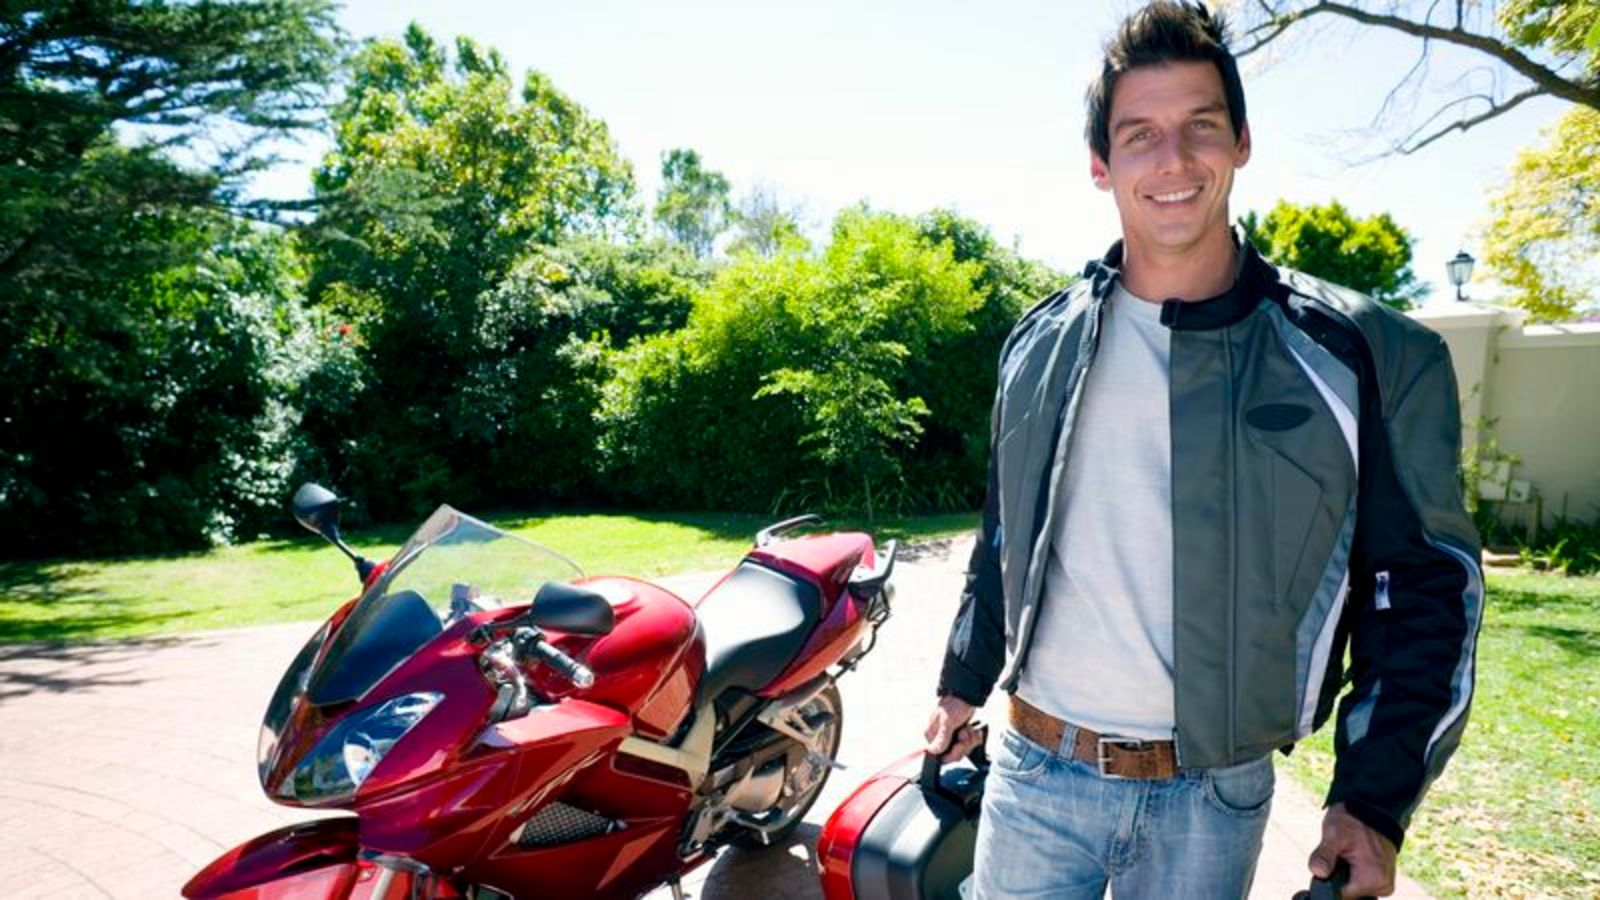 BREAKING: Friend Who Just Got Motorcycle Already Dead https://t.co/bbU6fxlO3A https://t.co/kZpGkBzGpp